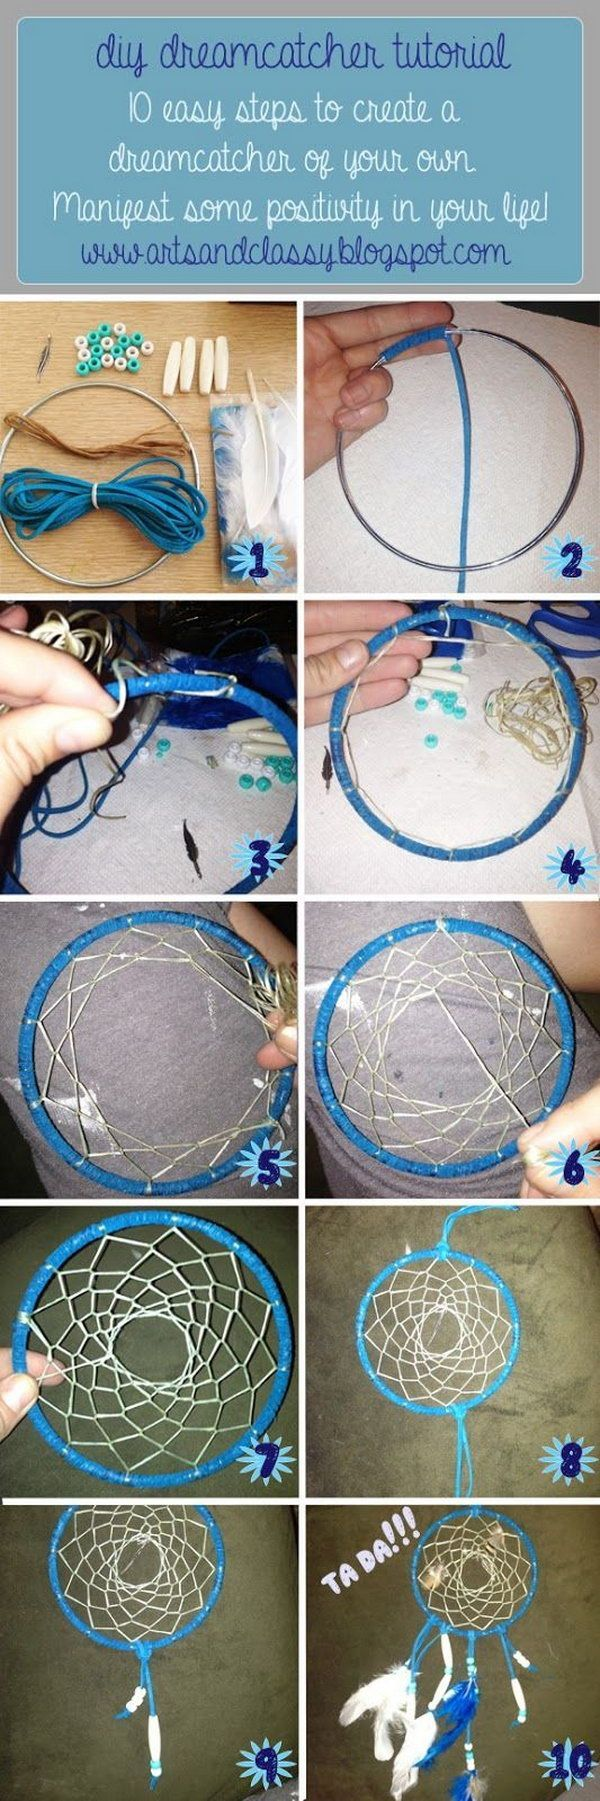 DIY Traditional Dream Catcher - Noted List.